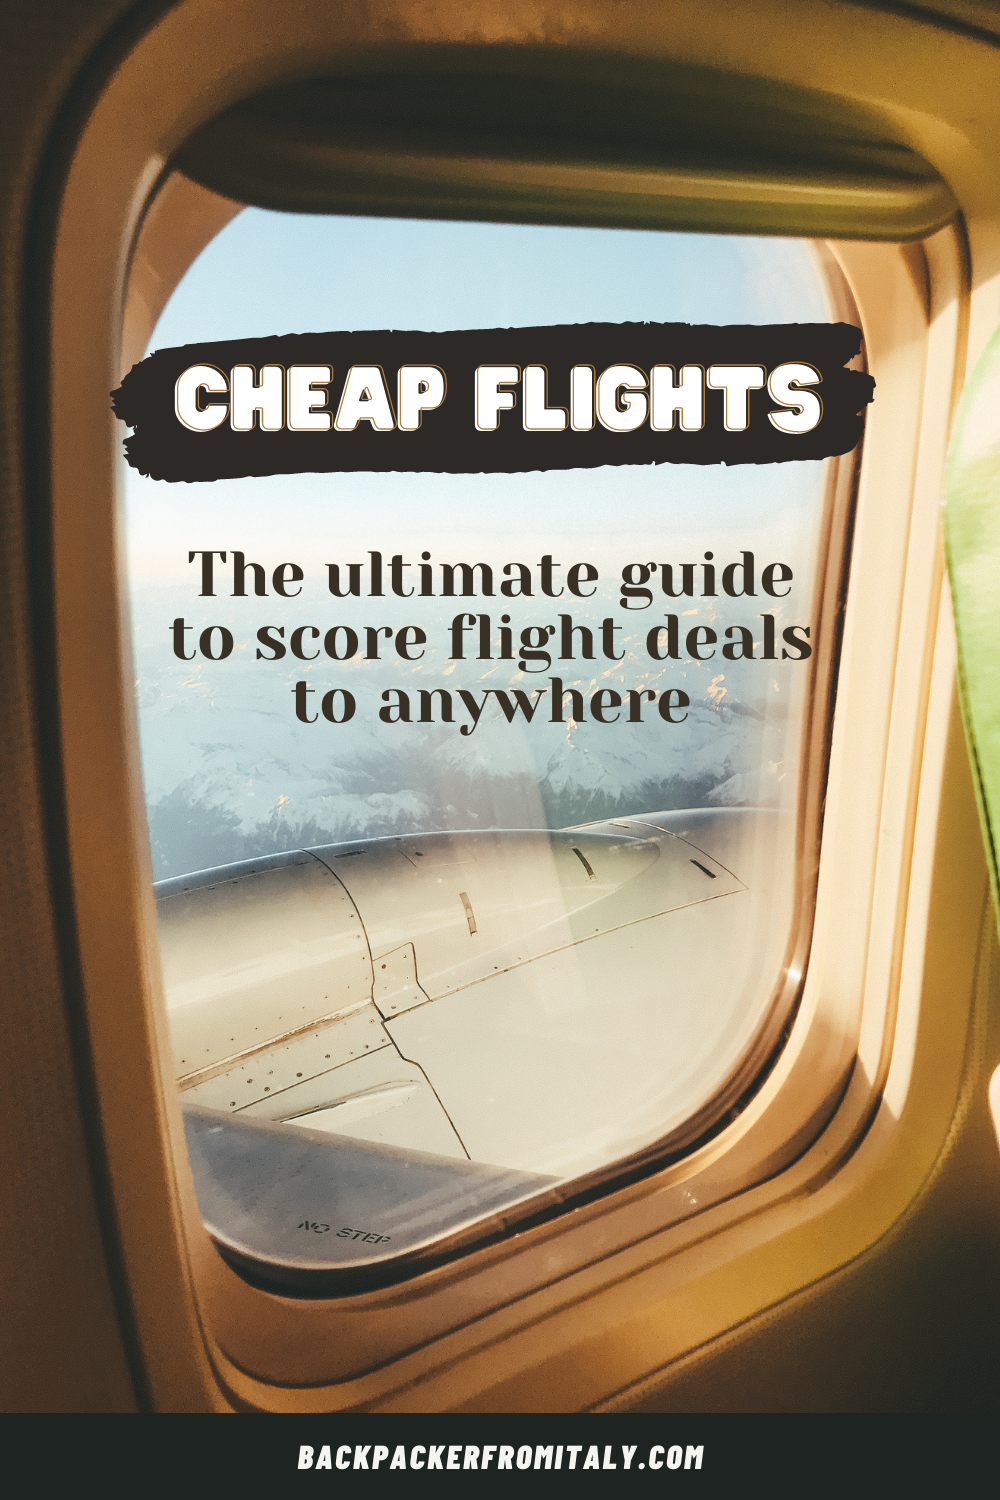 How can I save money on plane tickets? Everyone has asked themselves this question at least once. This FREE guide will help you understand better how you can also find cheap flights to anywhere in the world. #CheapFlights #Flights #Travel #TravelResources